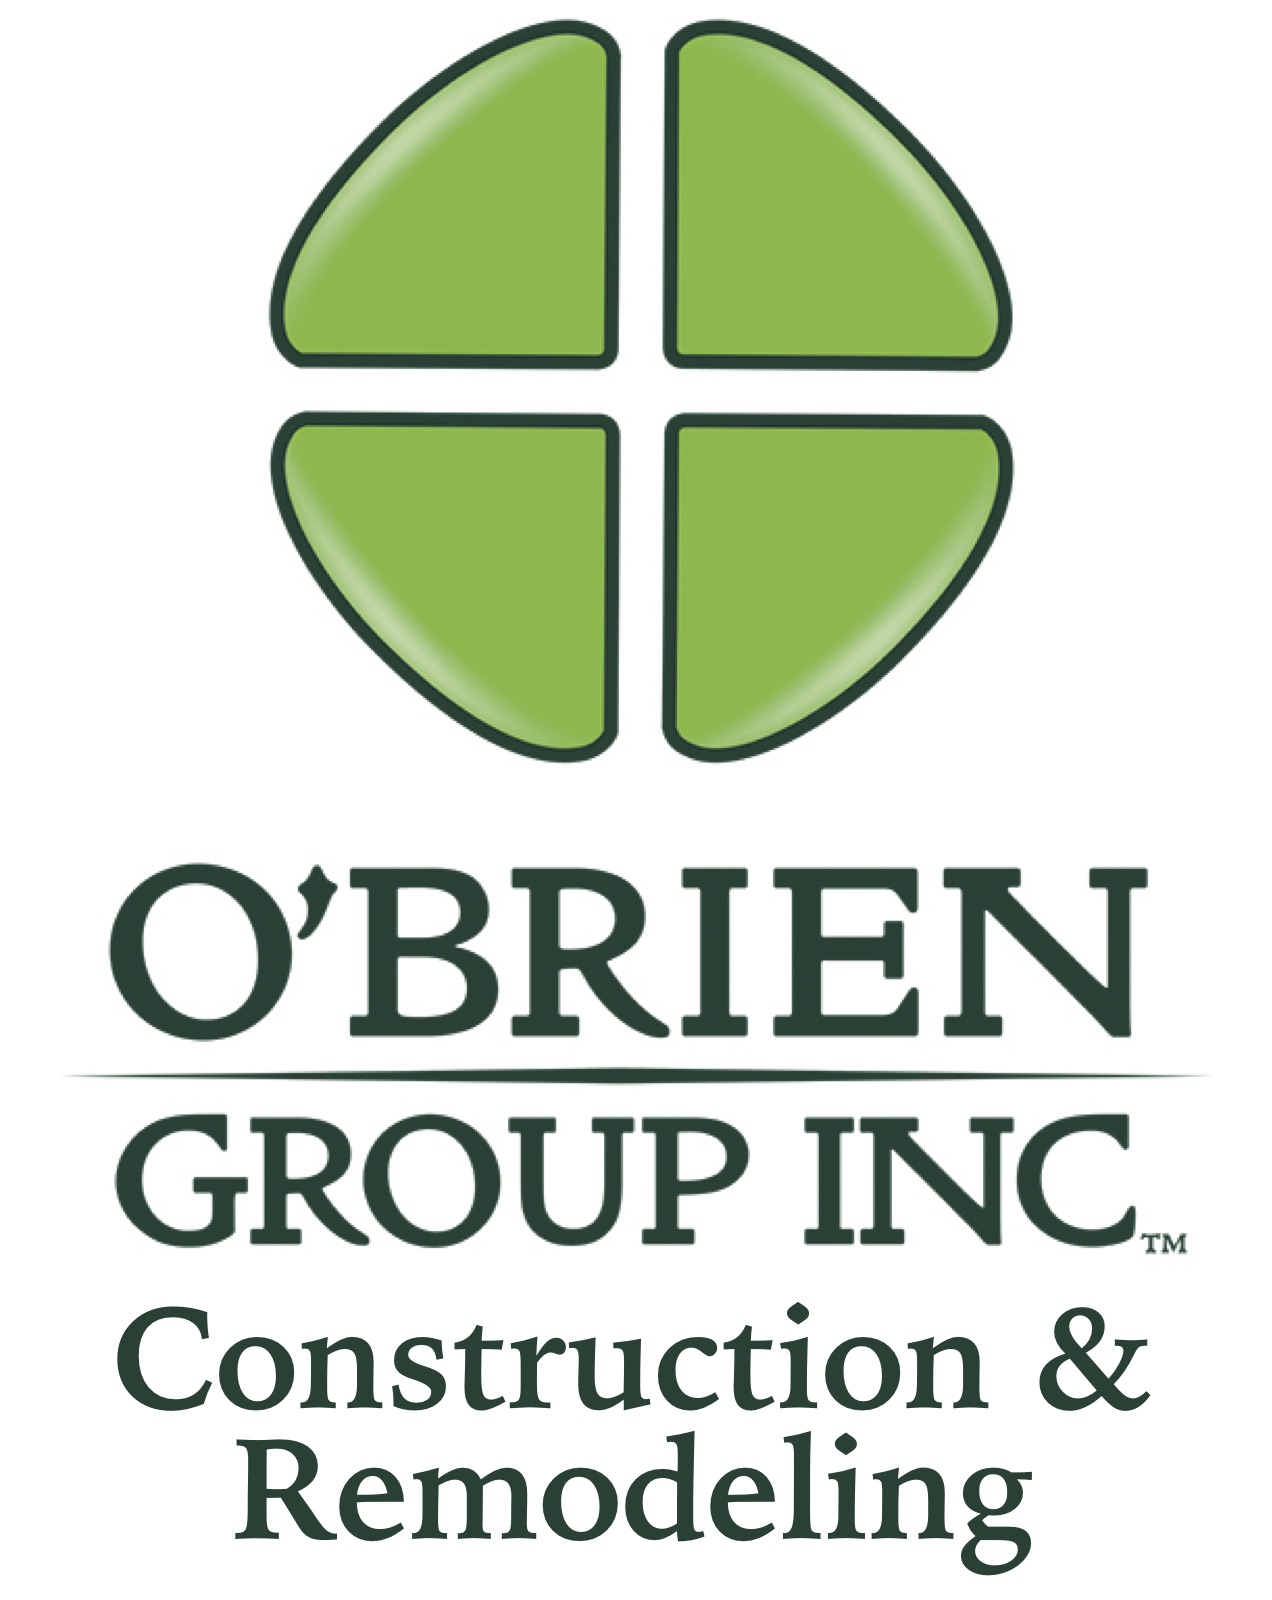 The O'Brien Group, Inc. logo